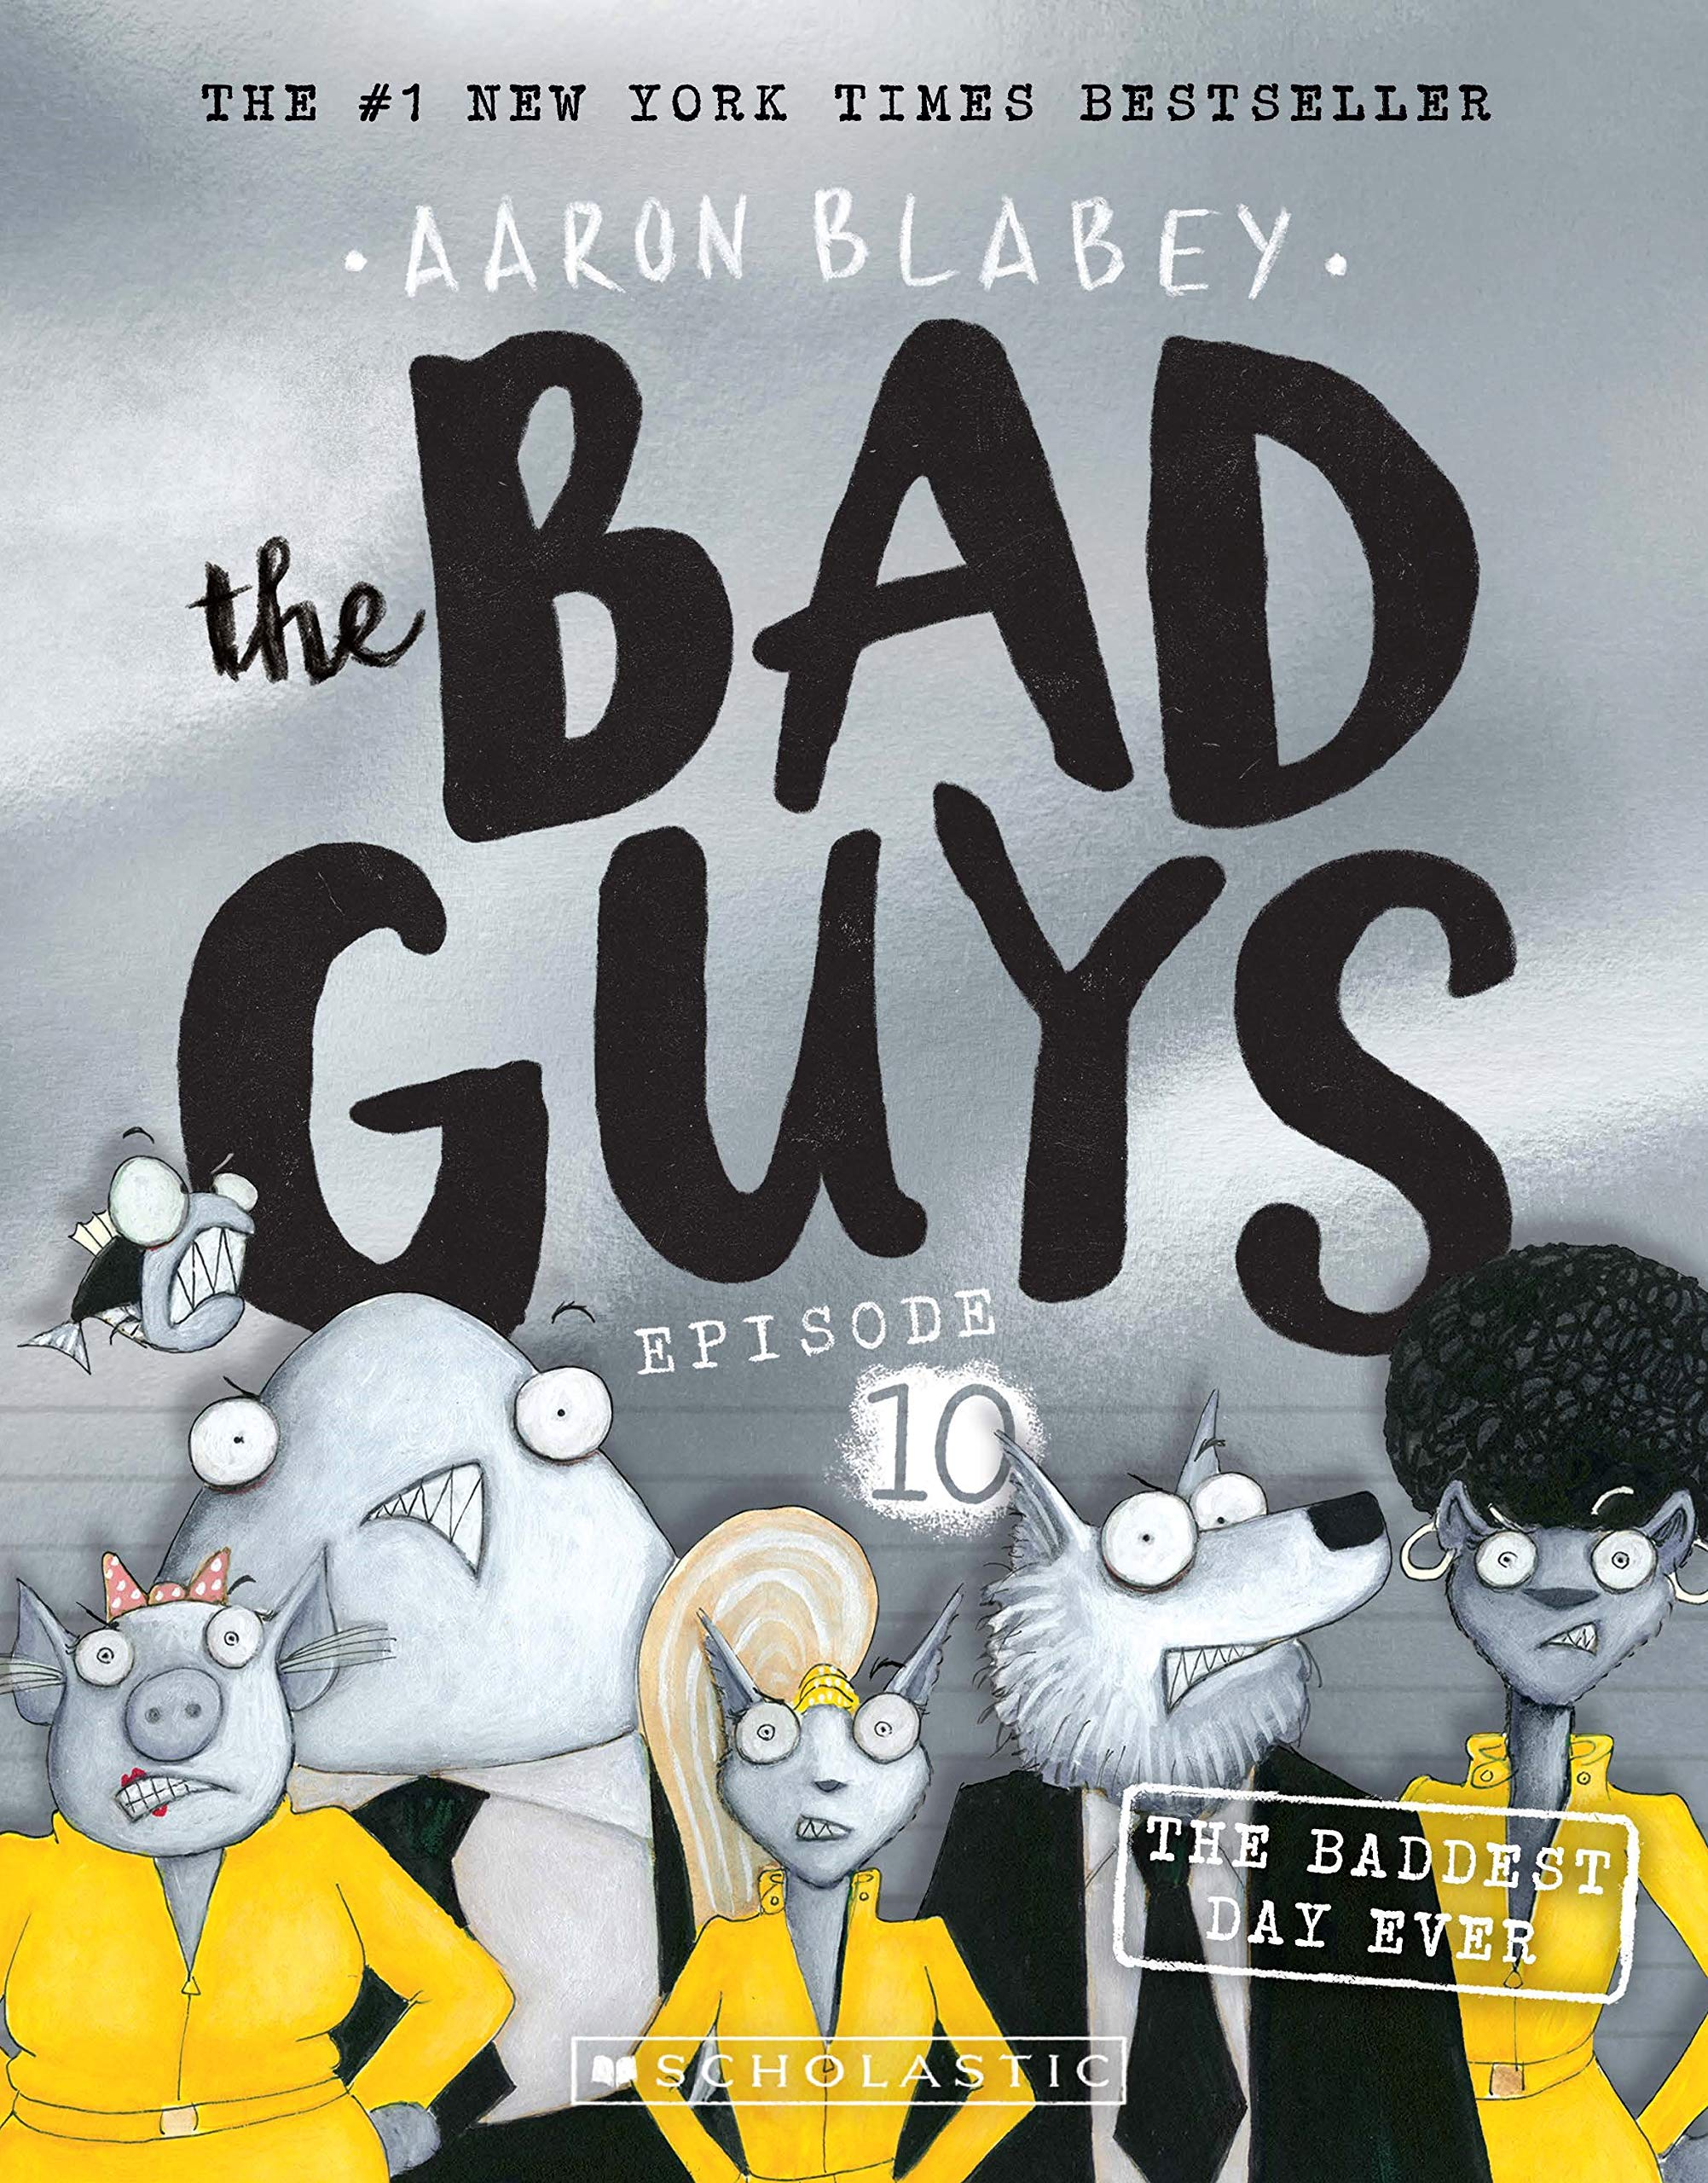 Buy The Bad Guys Episode 10 Book Online at Low Prices in.